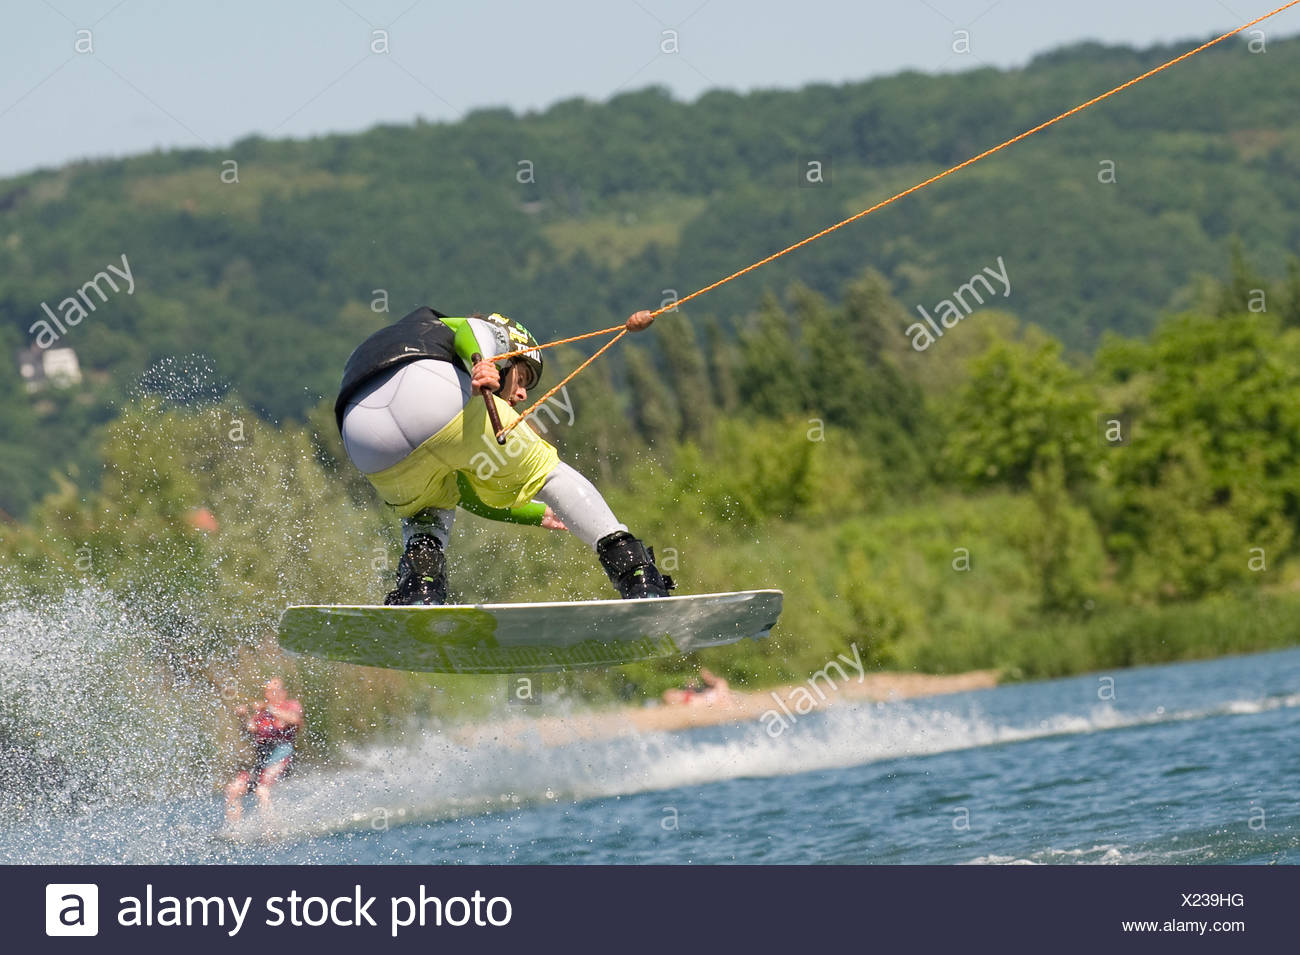 Dresden, Germany, man drives a wakeboard on a lake - Stock Image